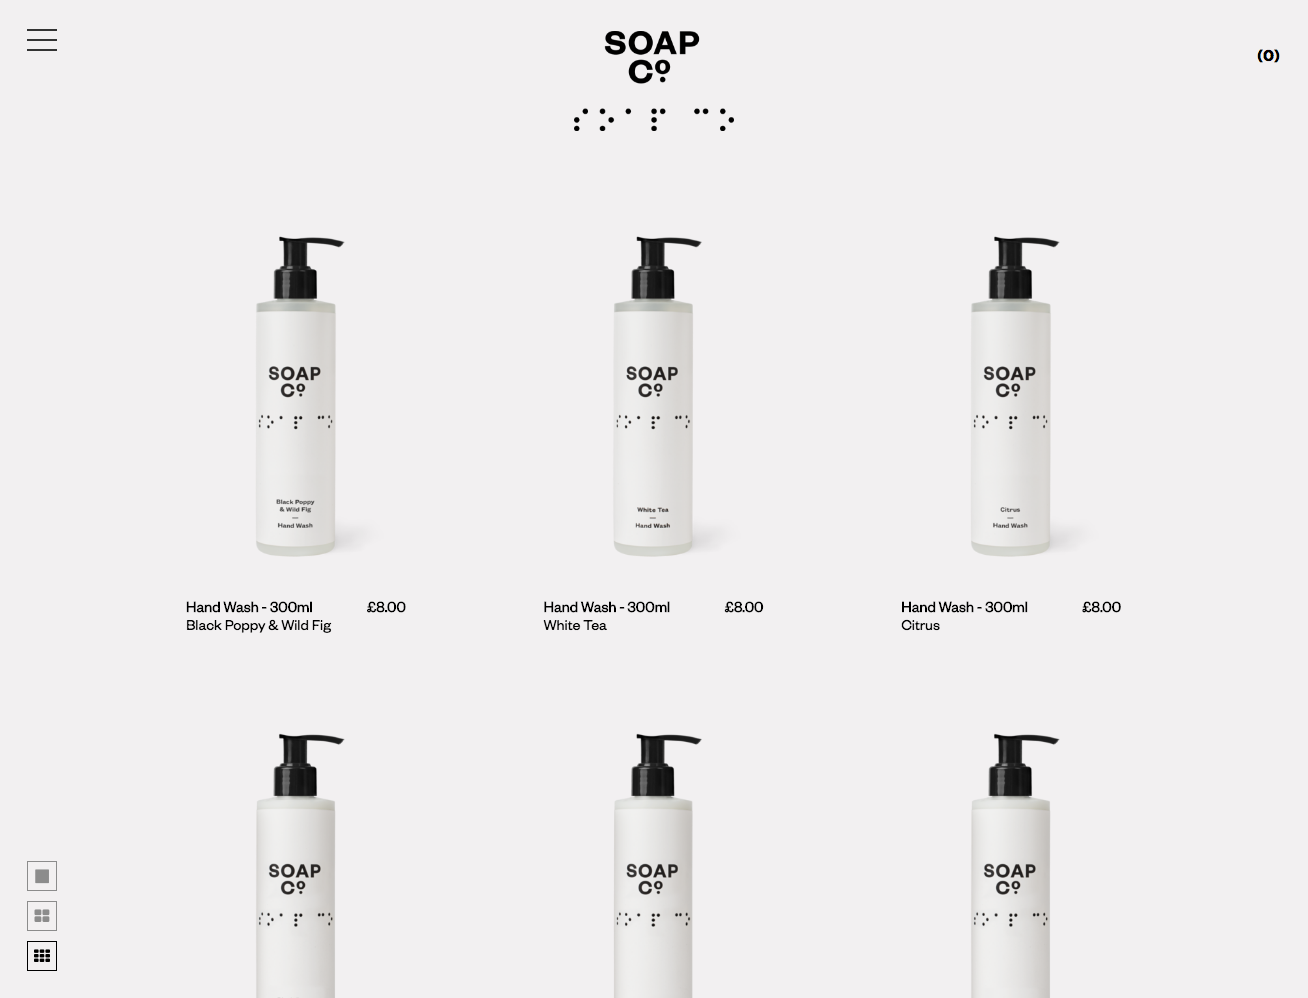 Ecommerce Website Design - The Soap Co